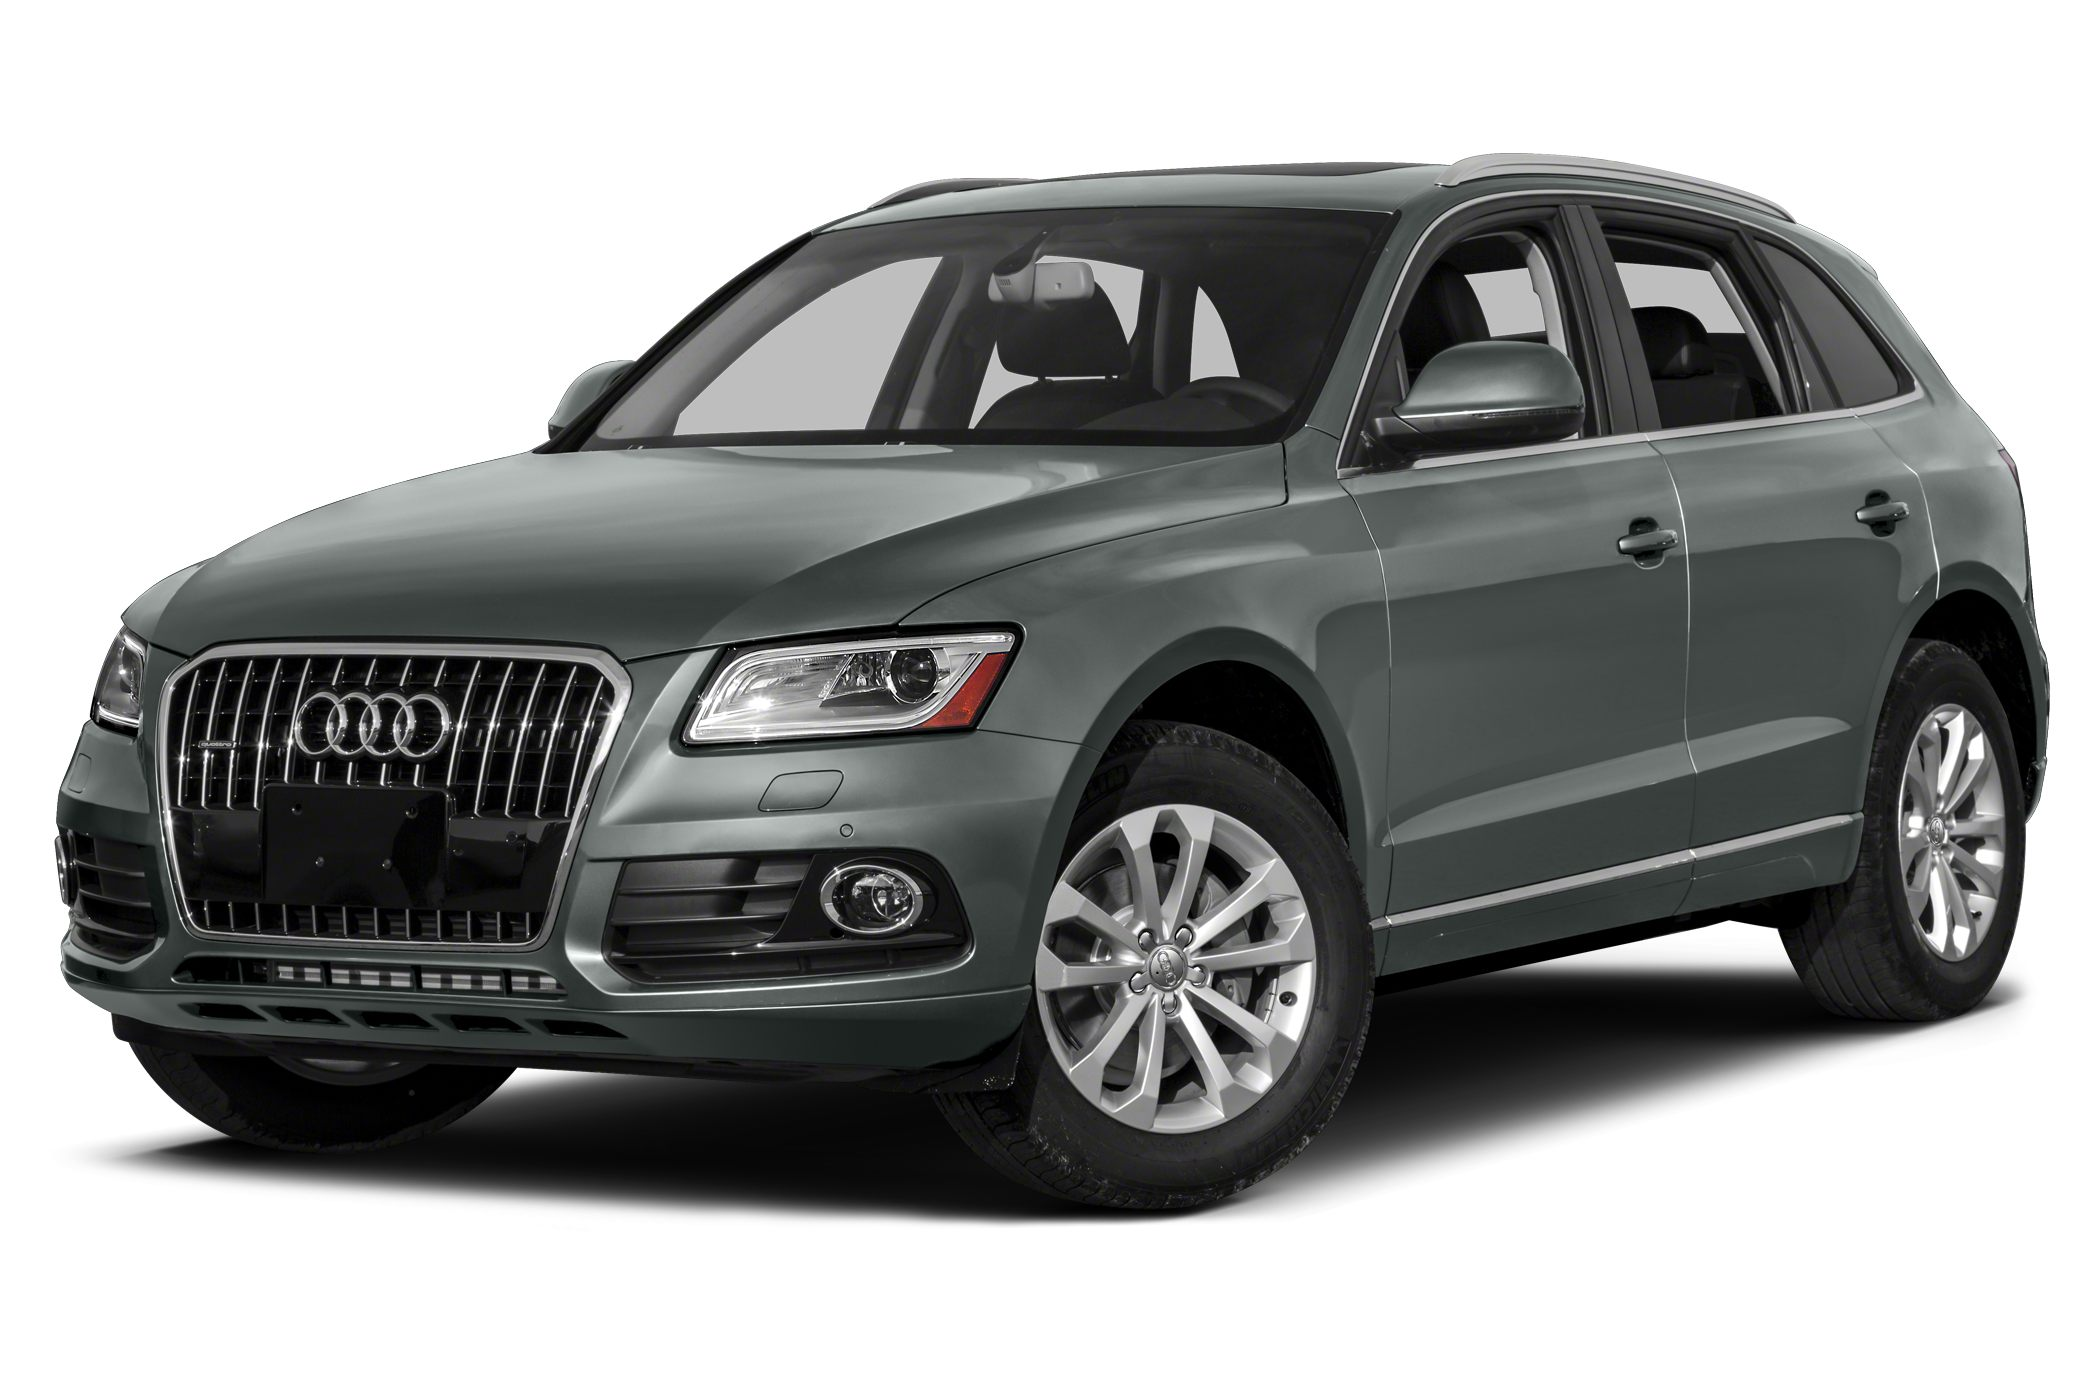 2014 Audi Q5 20T quattro Premium WE SELL OUR VEHICLES AT WHOLESALE PRICES AND STAND BEHIND OUR CA